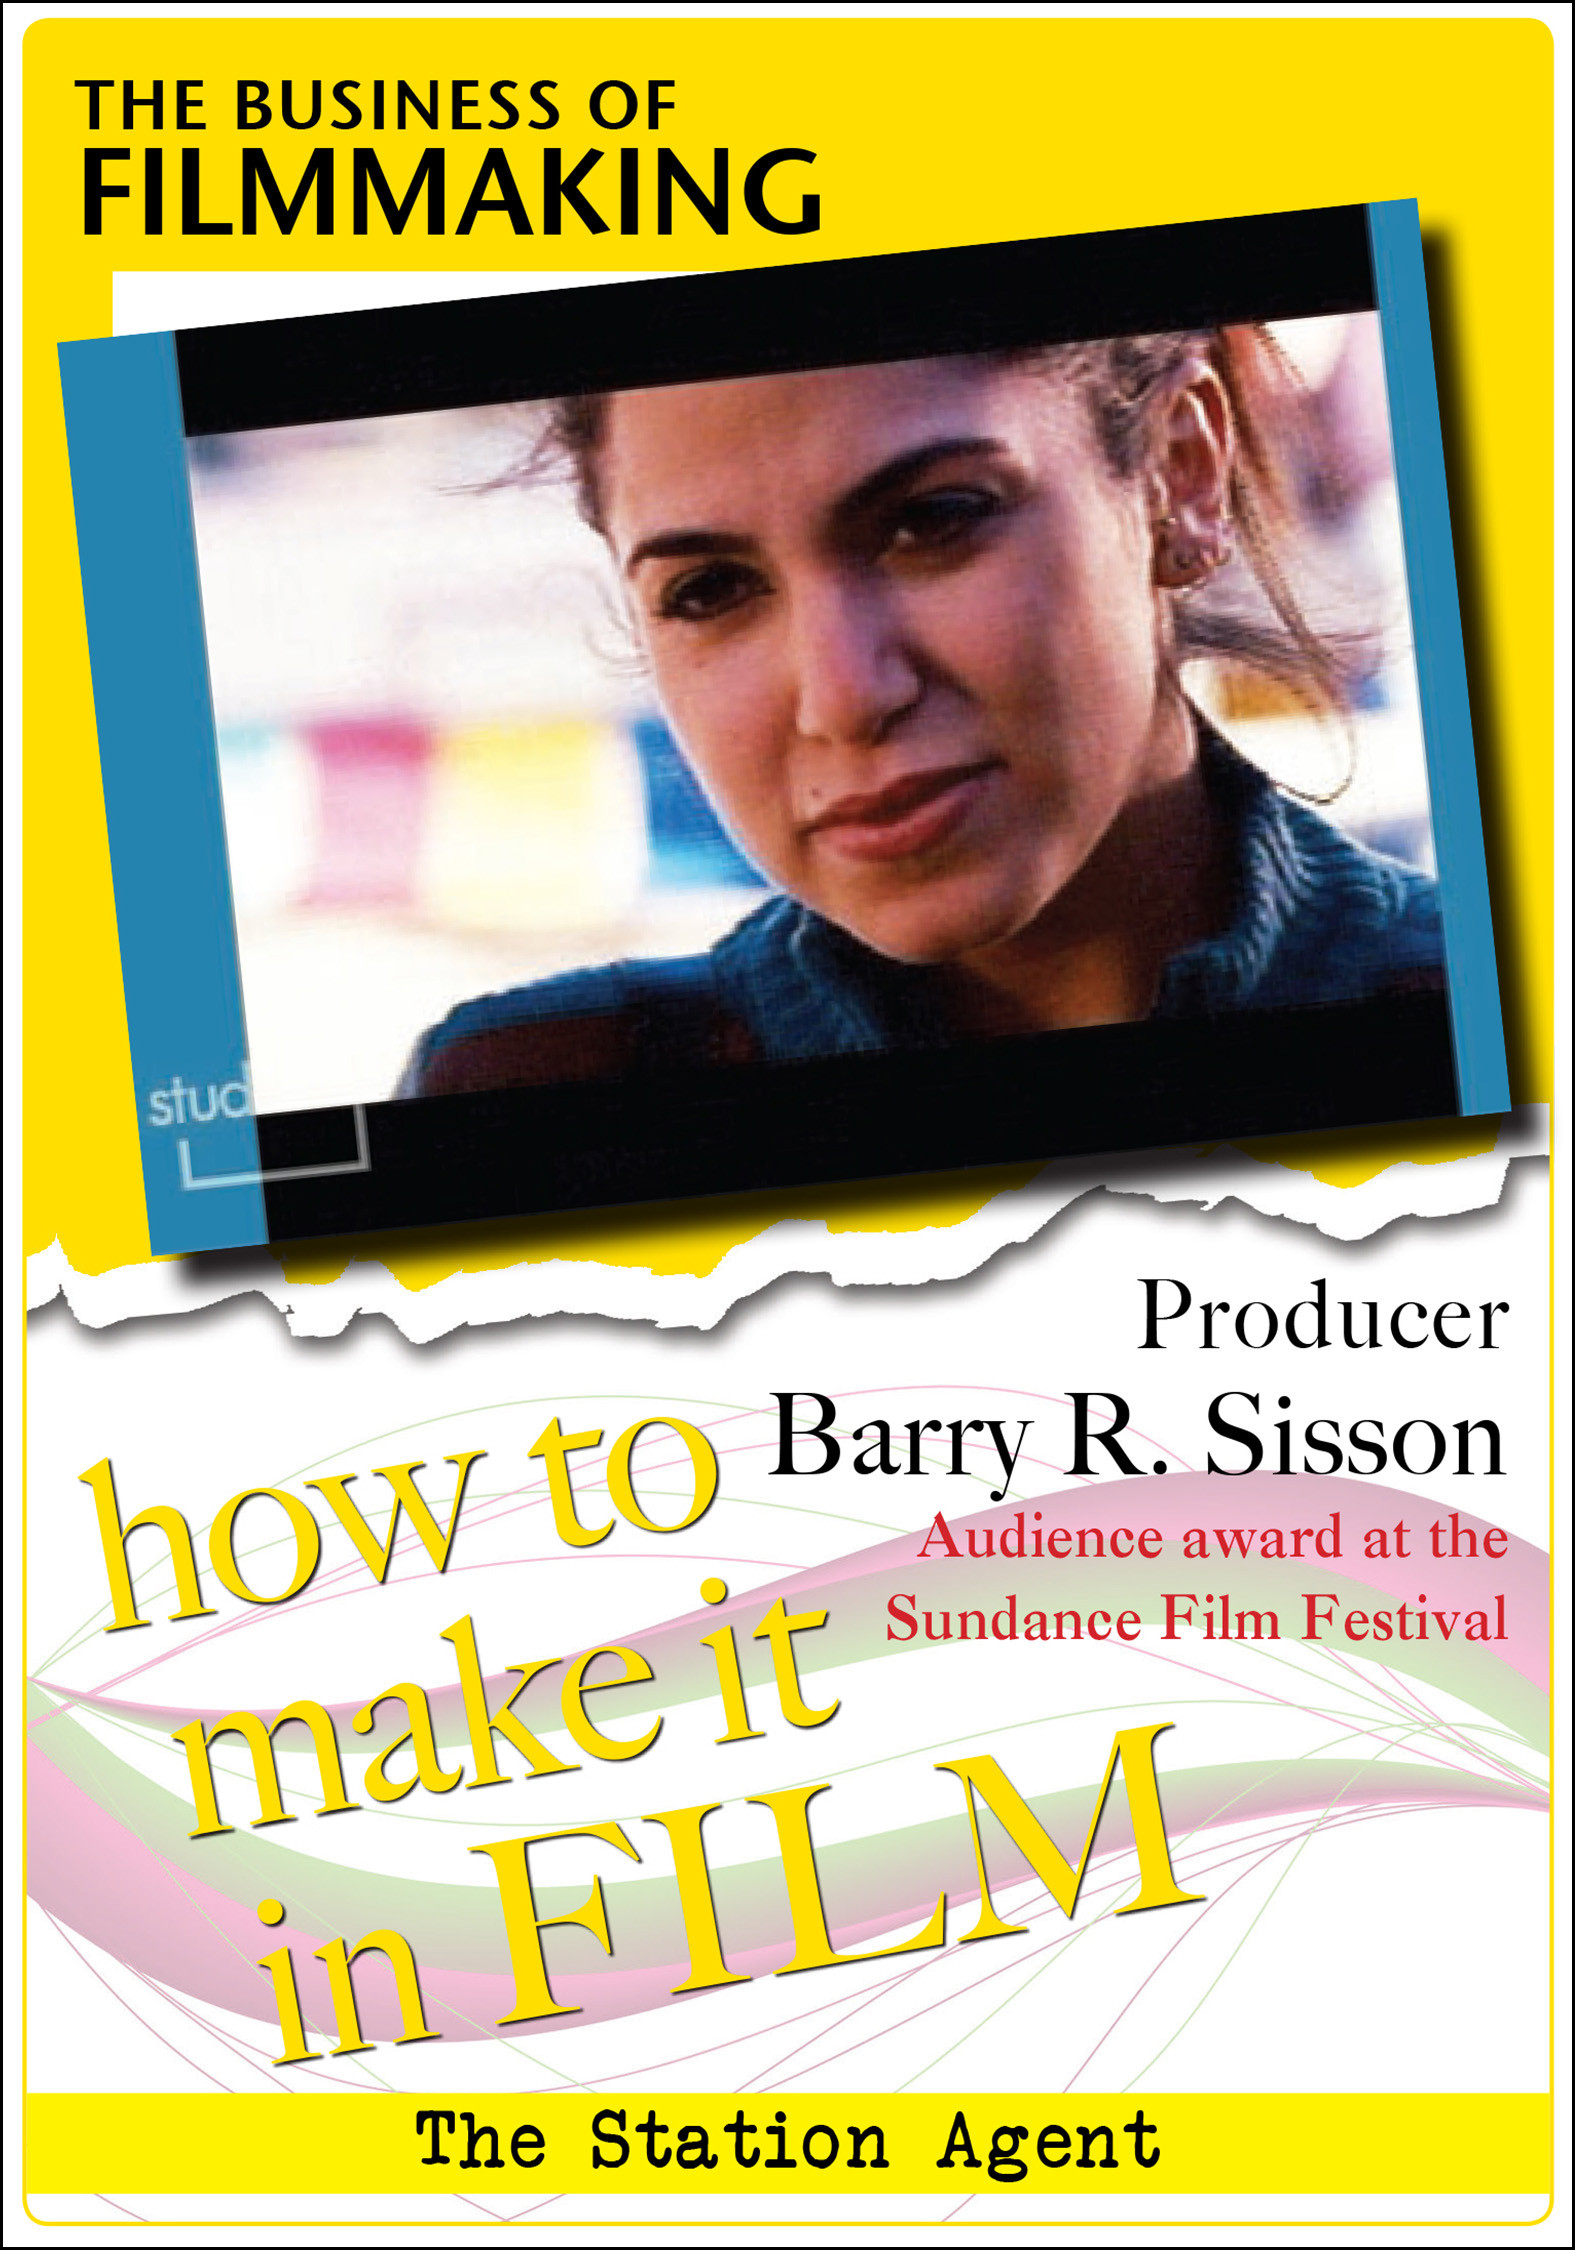 F2836 - The Business of Film with Producer Barry R. Sisson